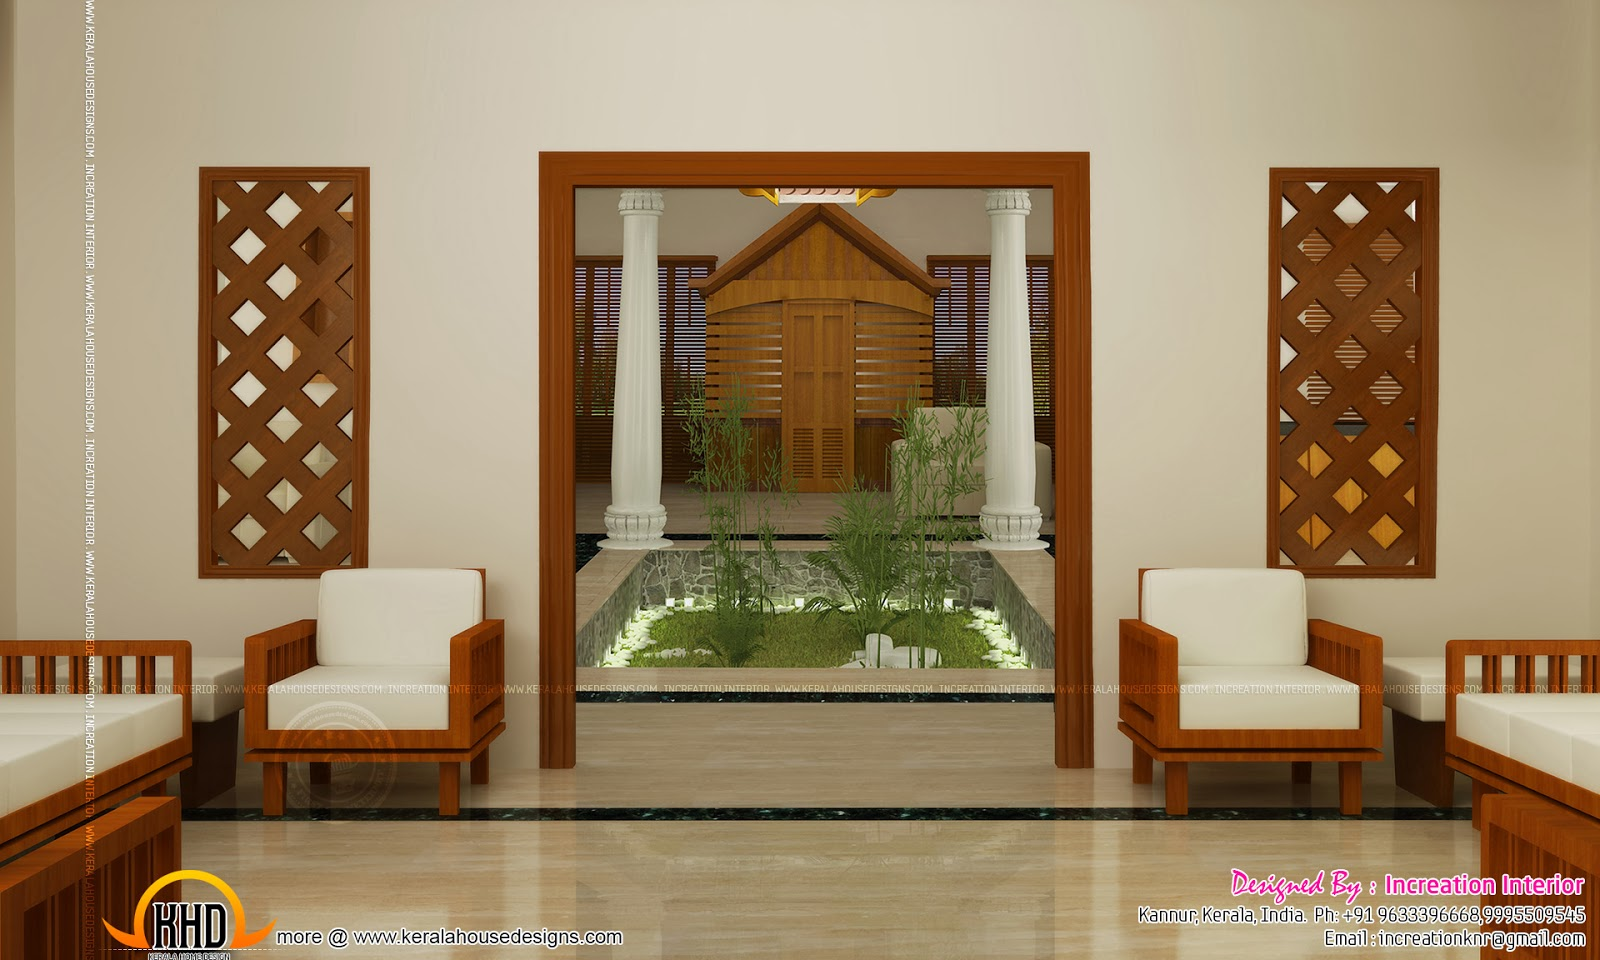 Beautiful home interiors kerala home design and floor plans for Beautiful interior designs of houses